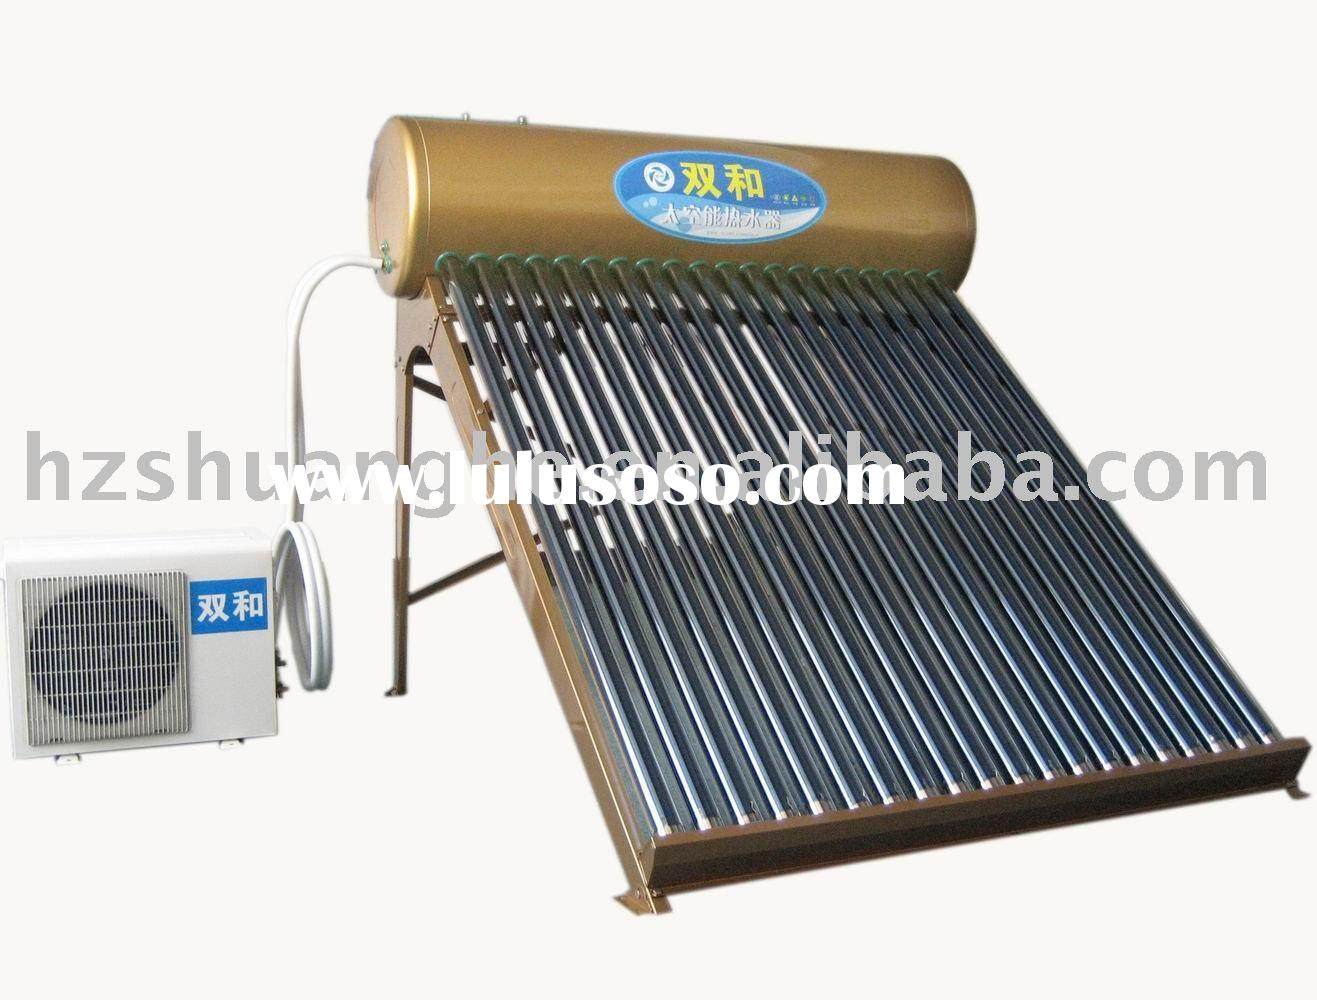 2012 new style evacuated tube solar water heater india